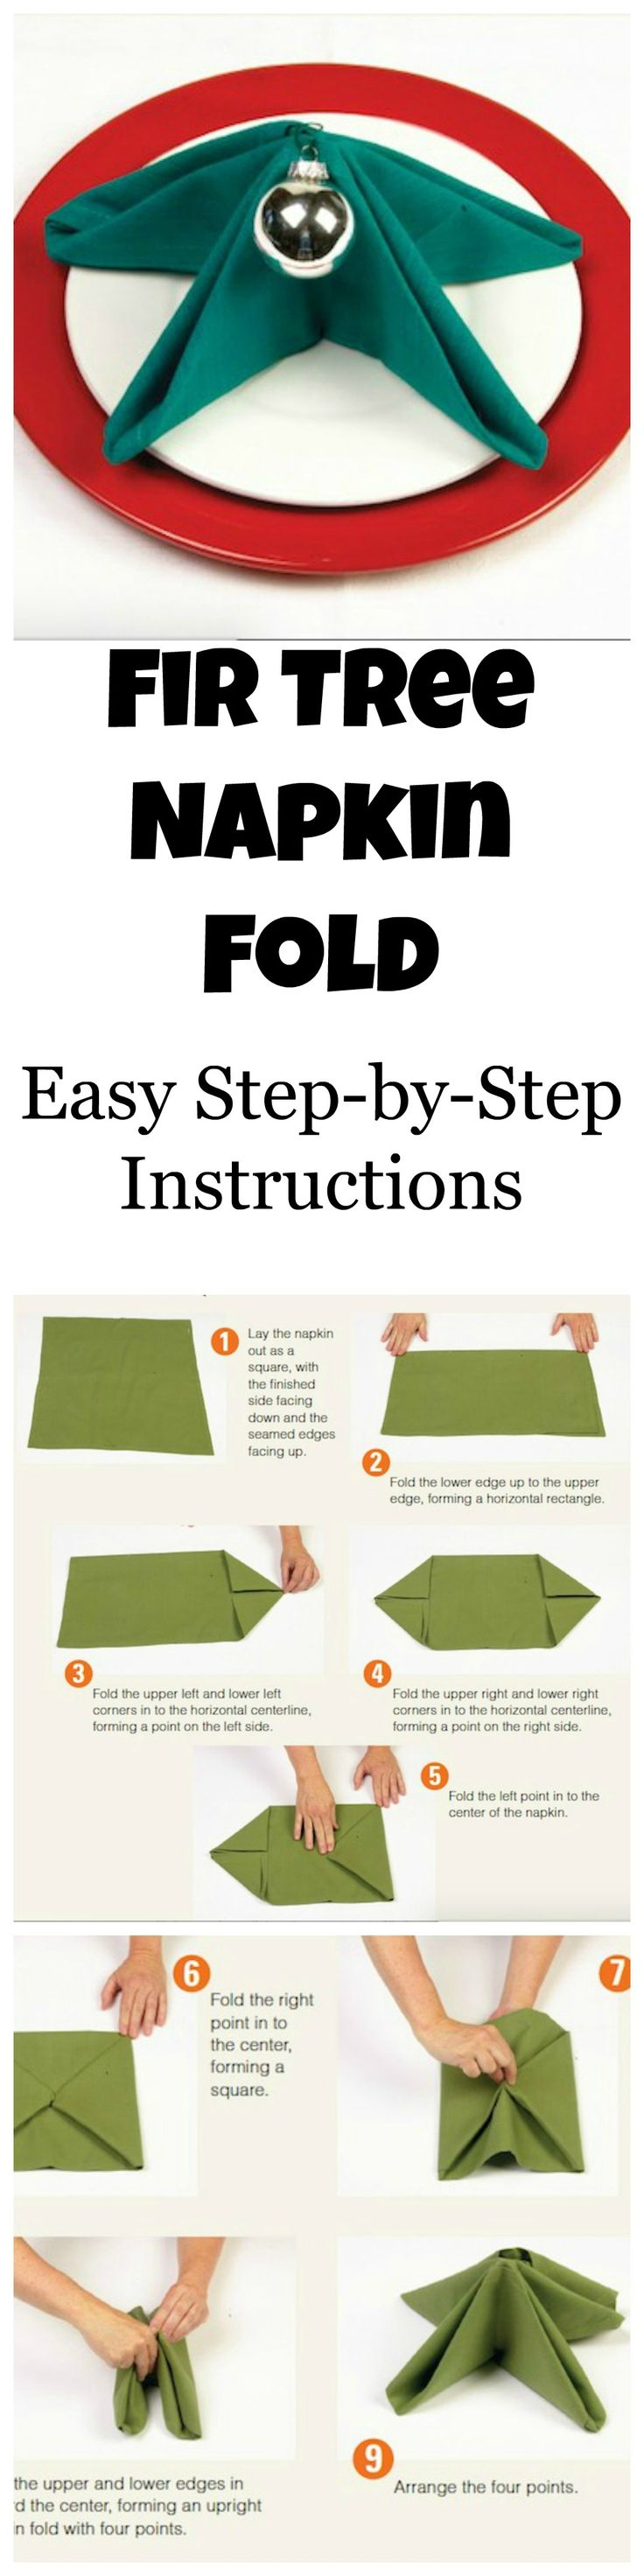 Your Step By Step Guide To The: Folding Your Dinner Napkins Like A Fir Tree Is Easy With